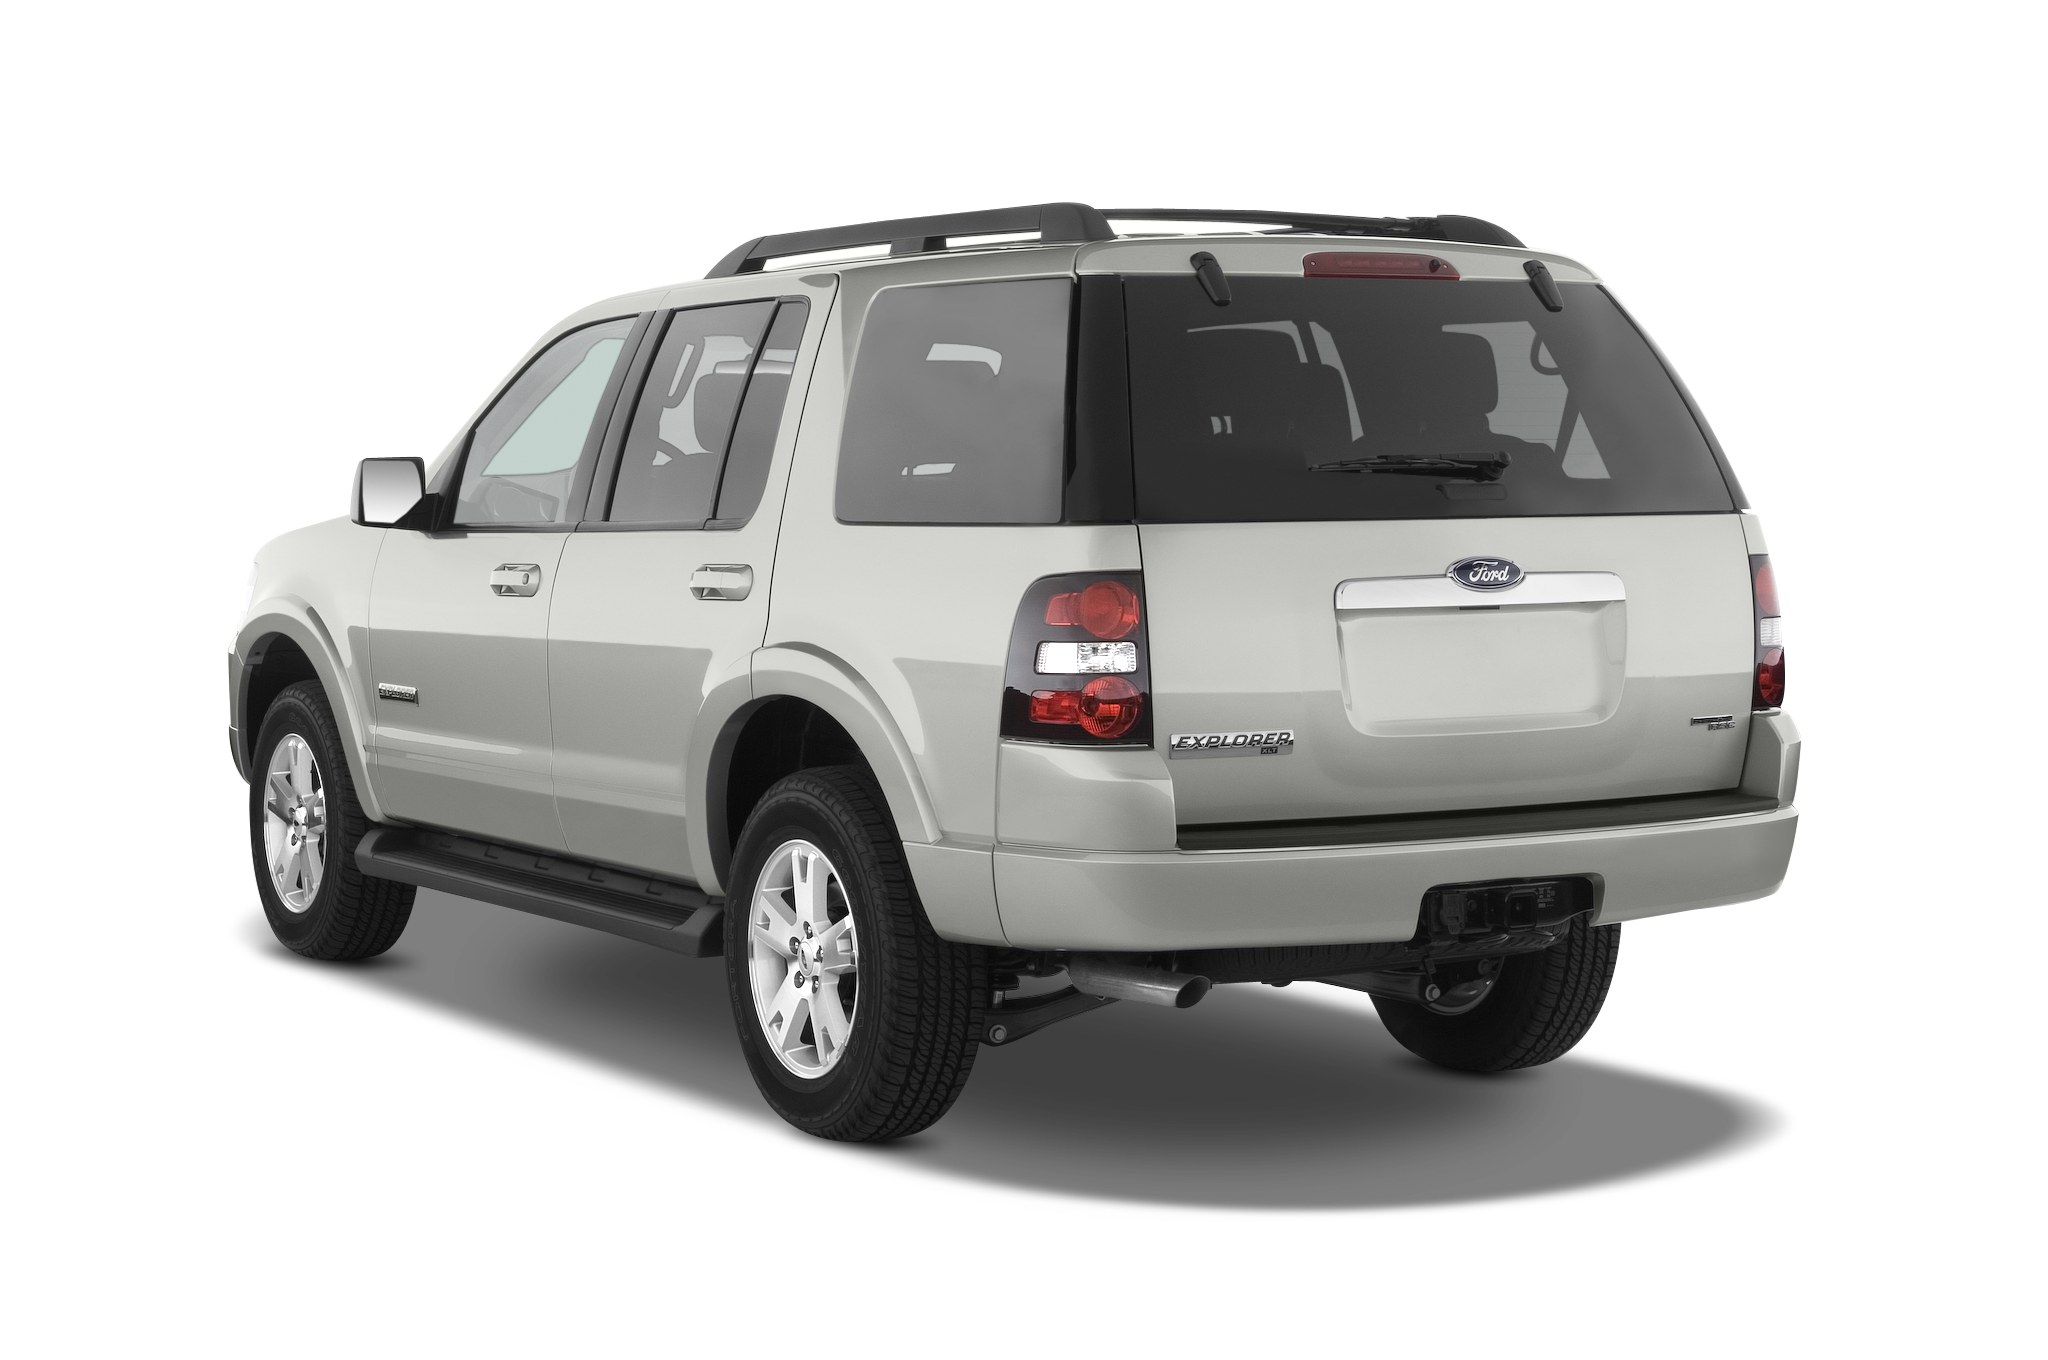 2011 ford explorer will offer inflatable seatbelts to rear seat passengers. Black Bedroom Furniture Sets. Home Design Ideas